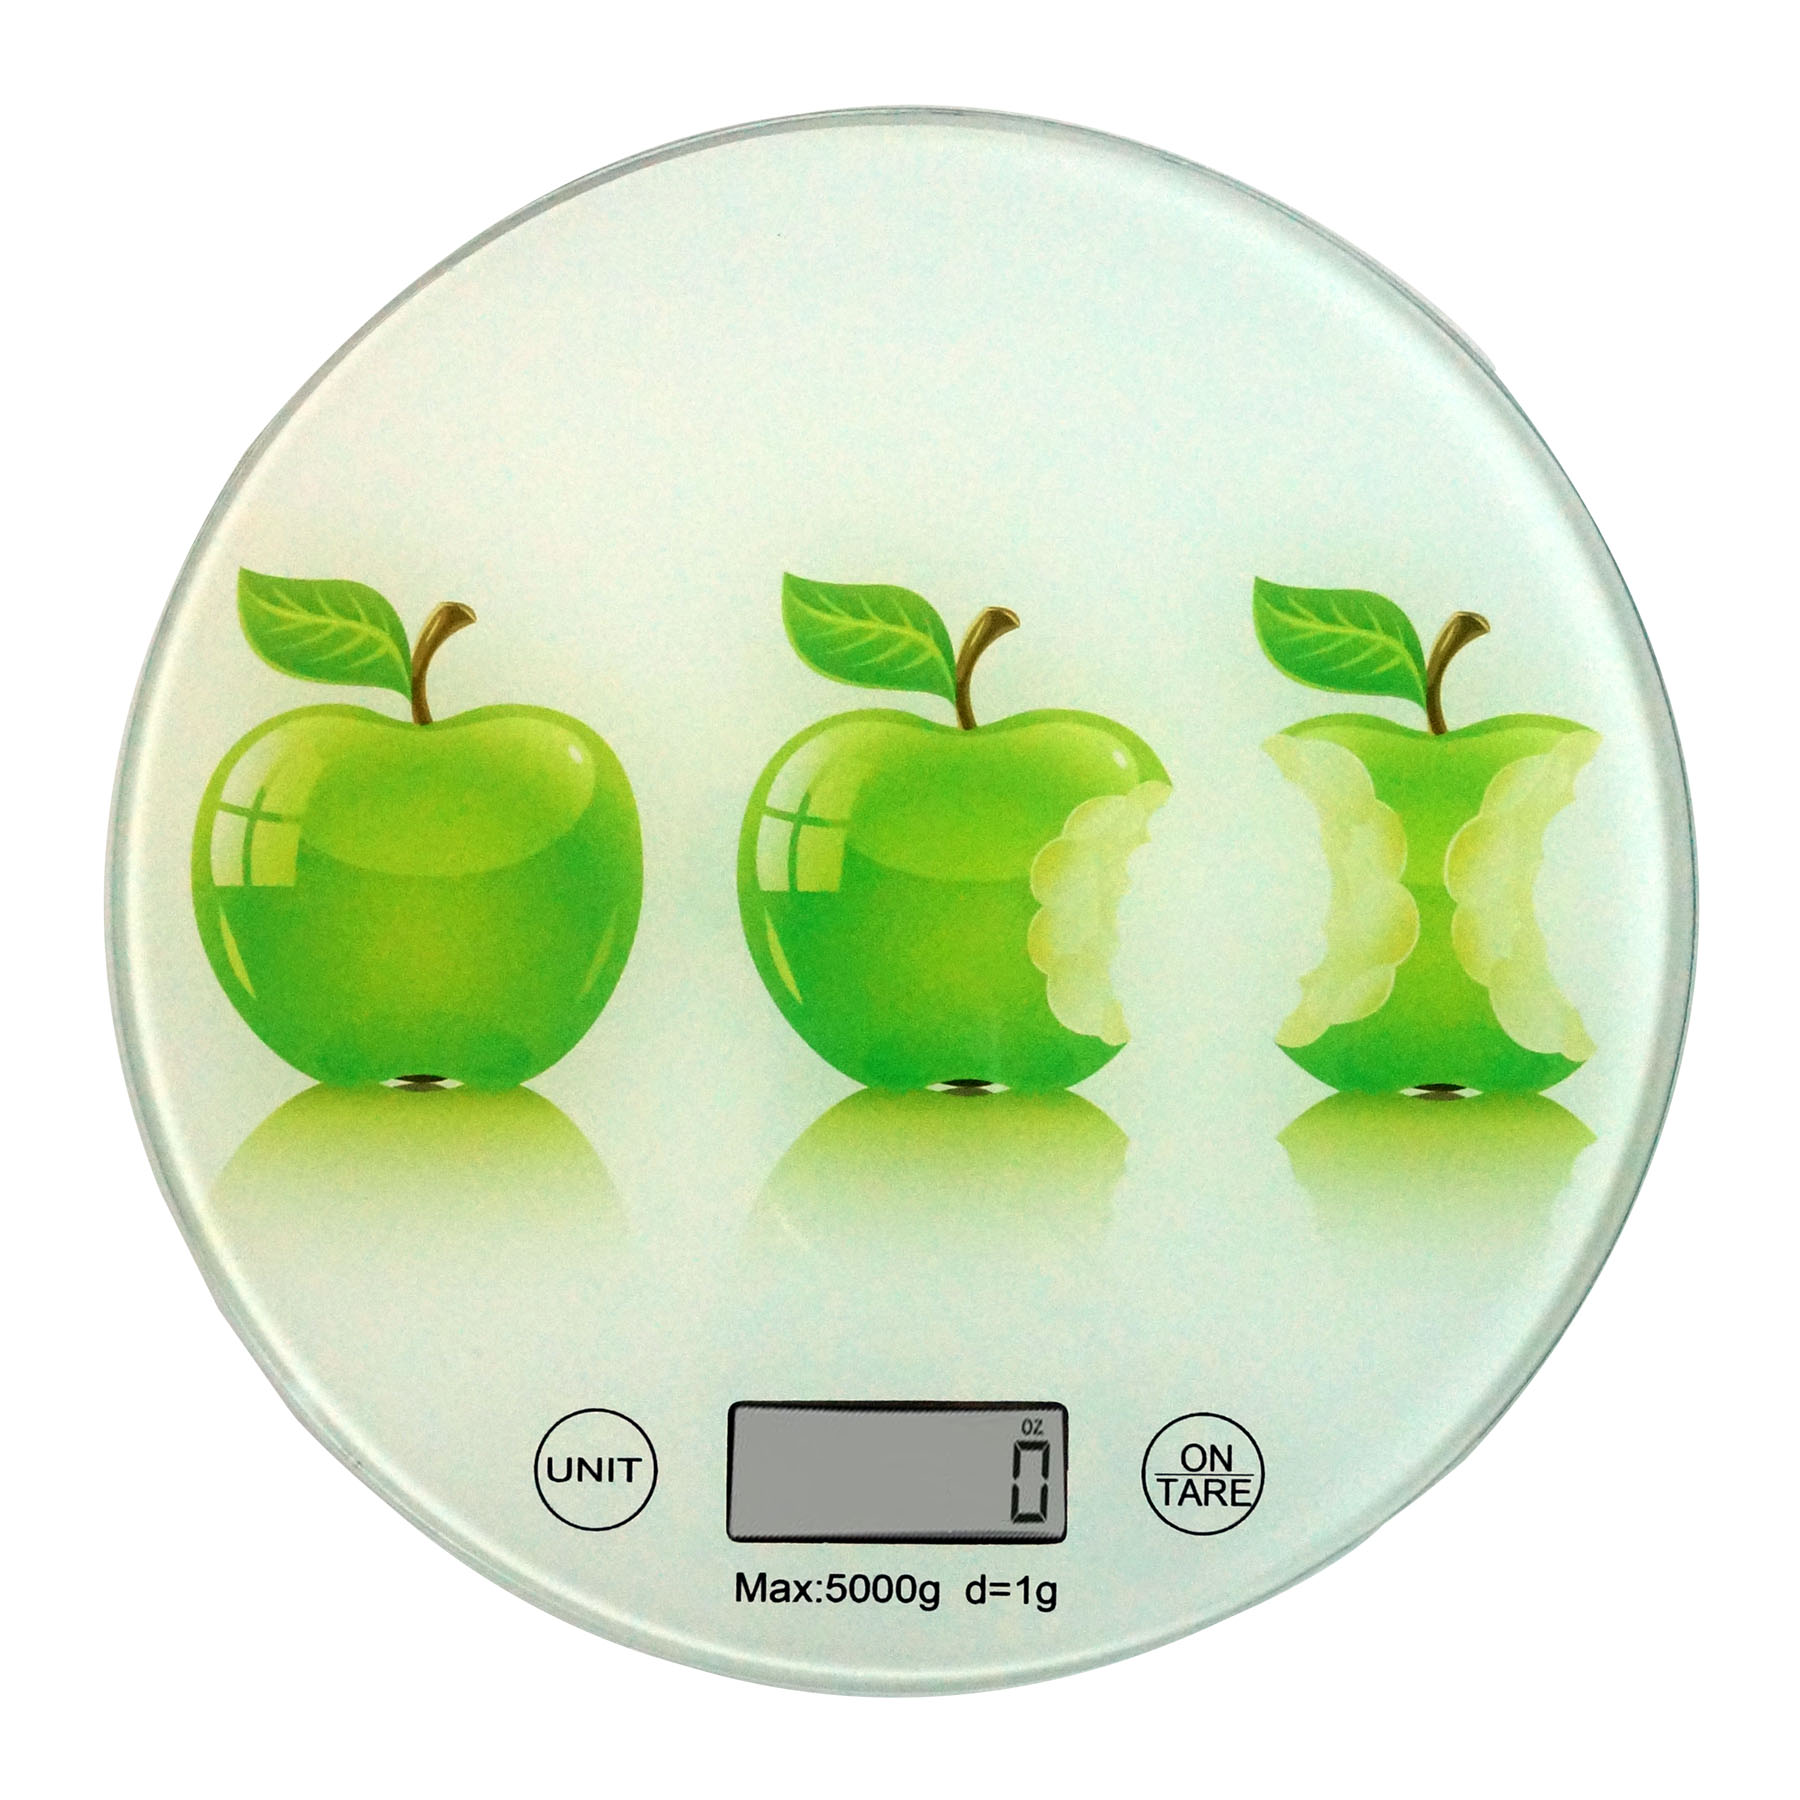 Round Digital Kitchen Scale Glass Apples Painted Surface ideal for Food Portion Measuring